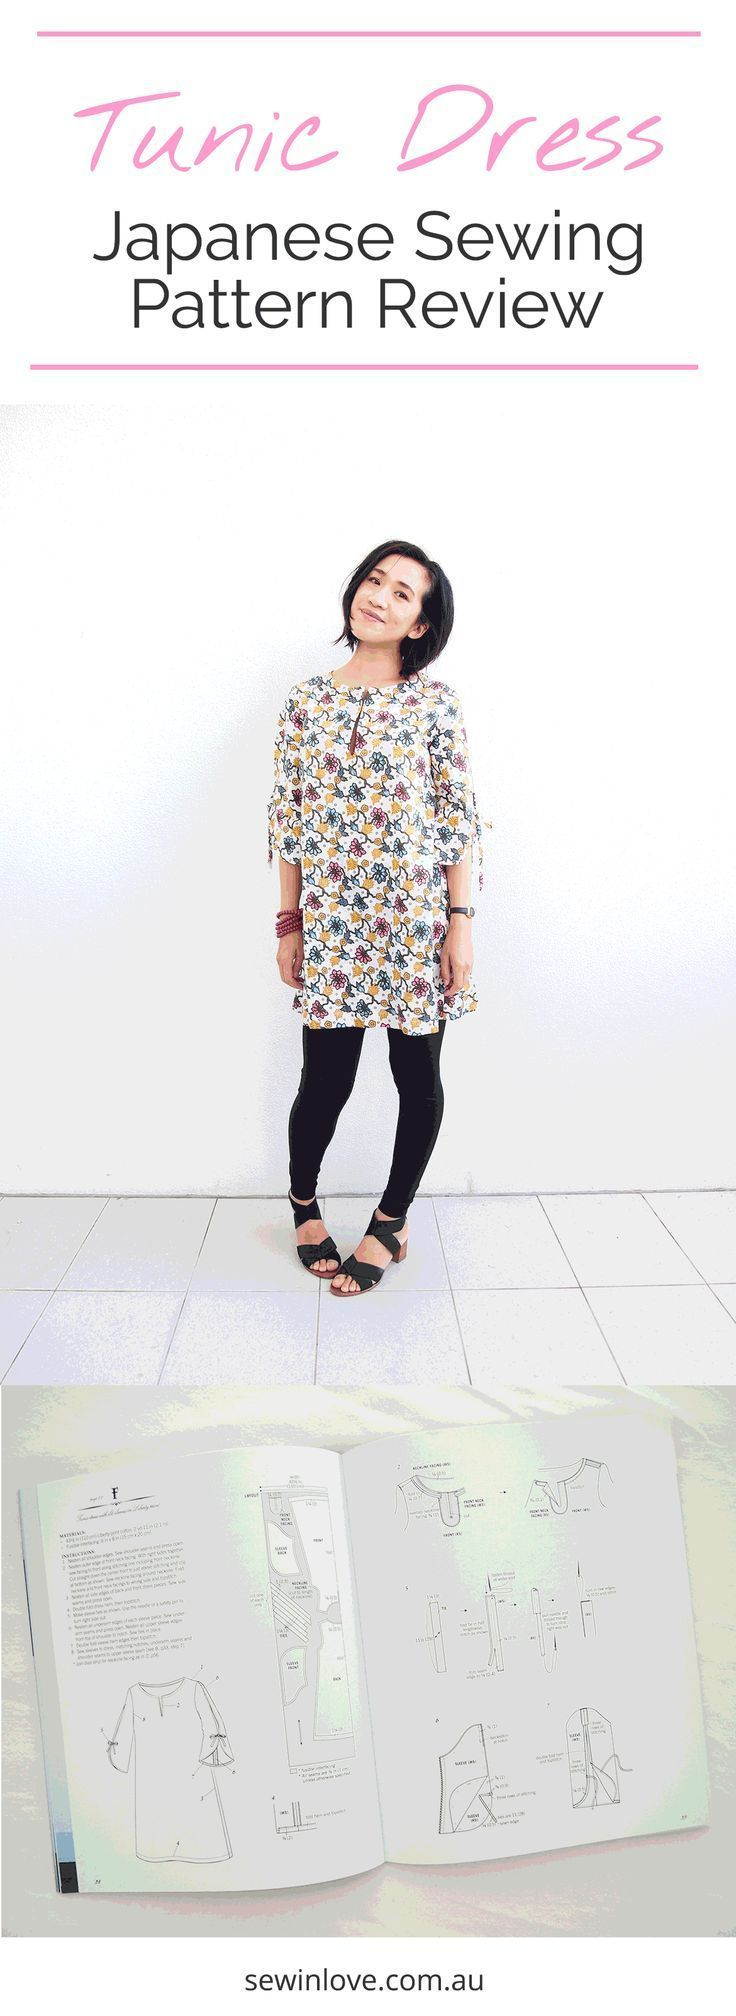 DIY Tunic Dress | This is from the popular Japanese sewing pattern book, Stylish Dress Book 1. I've made the front slit a little longer than the original design so I can breastfeed! Get my ebooks 15% off with this coupon: PINTEREST15